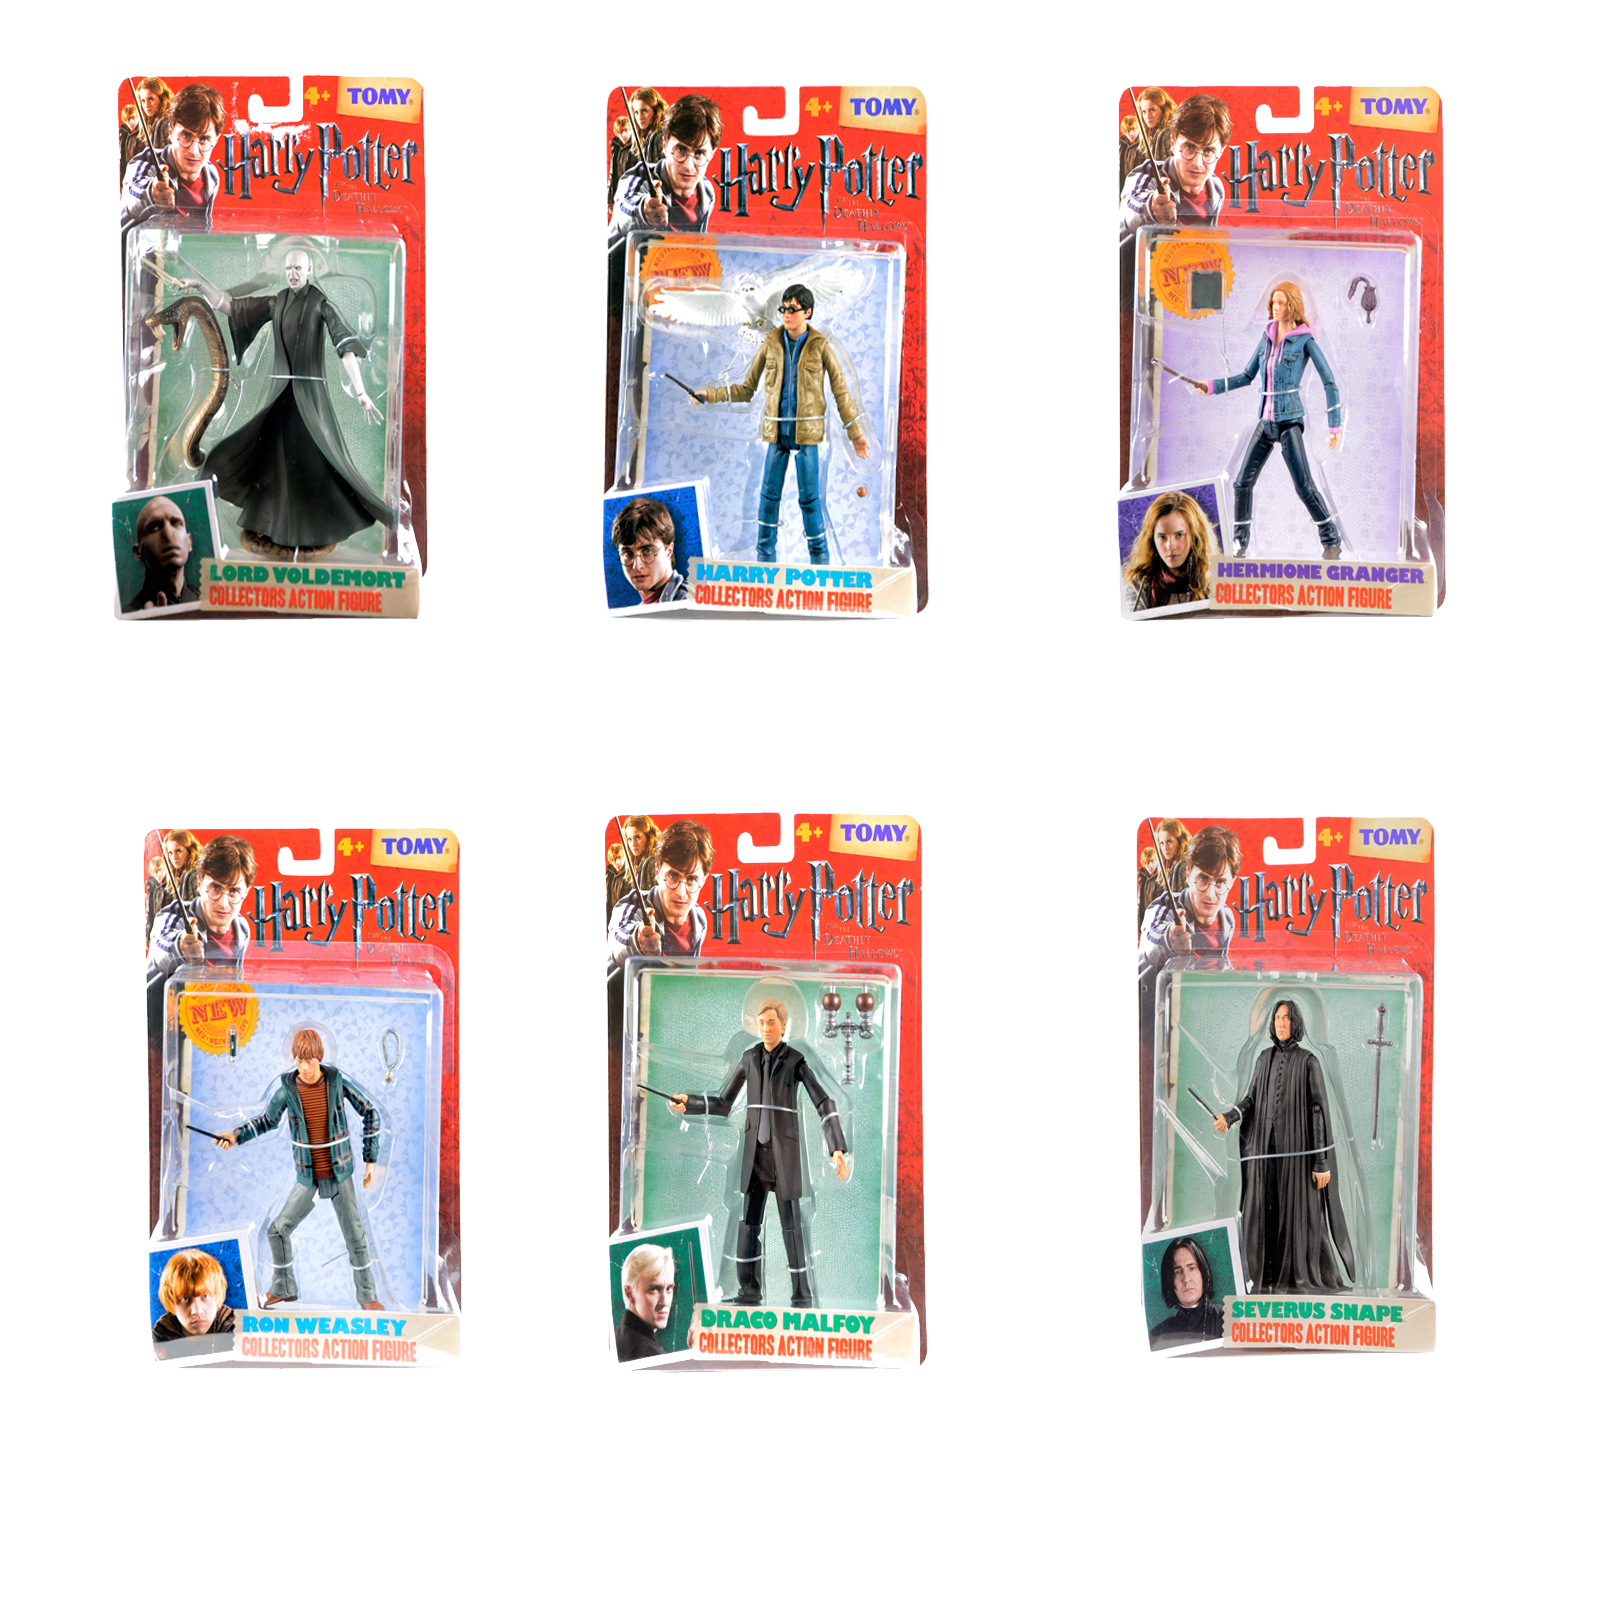 Best Harry Potter Toys And Figures : Tomy harry potter the deathly hallows action figure film